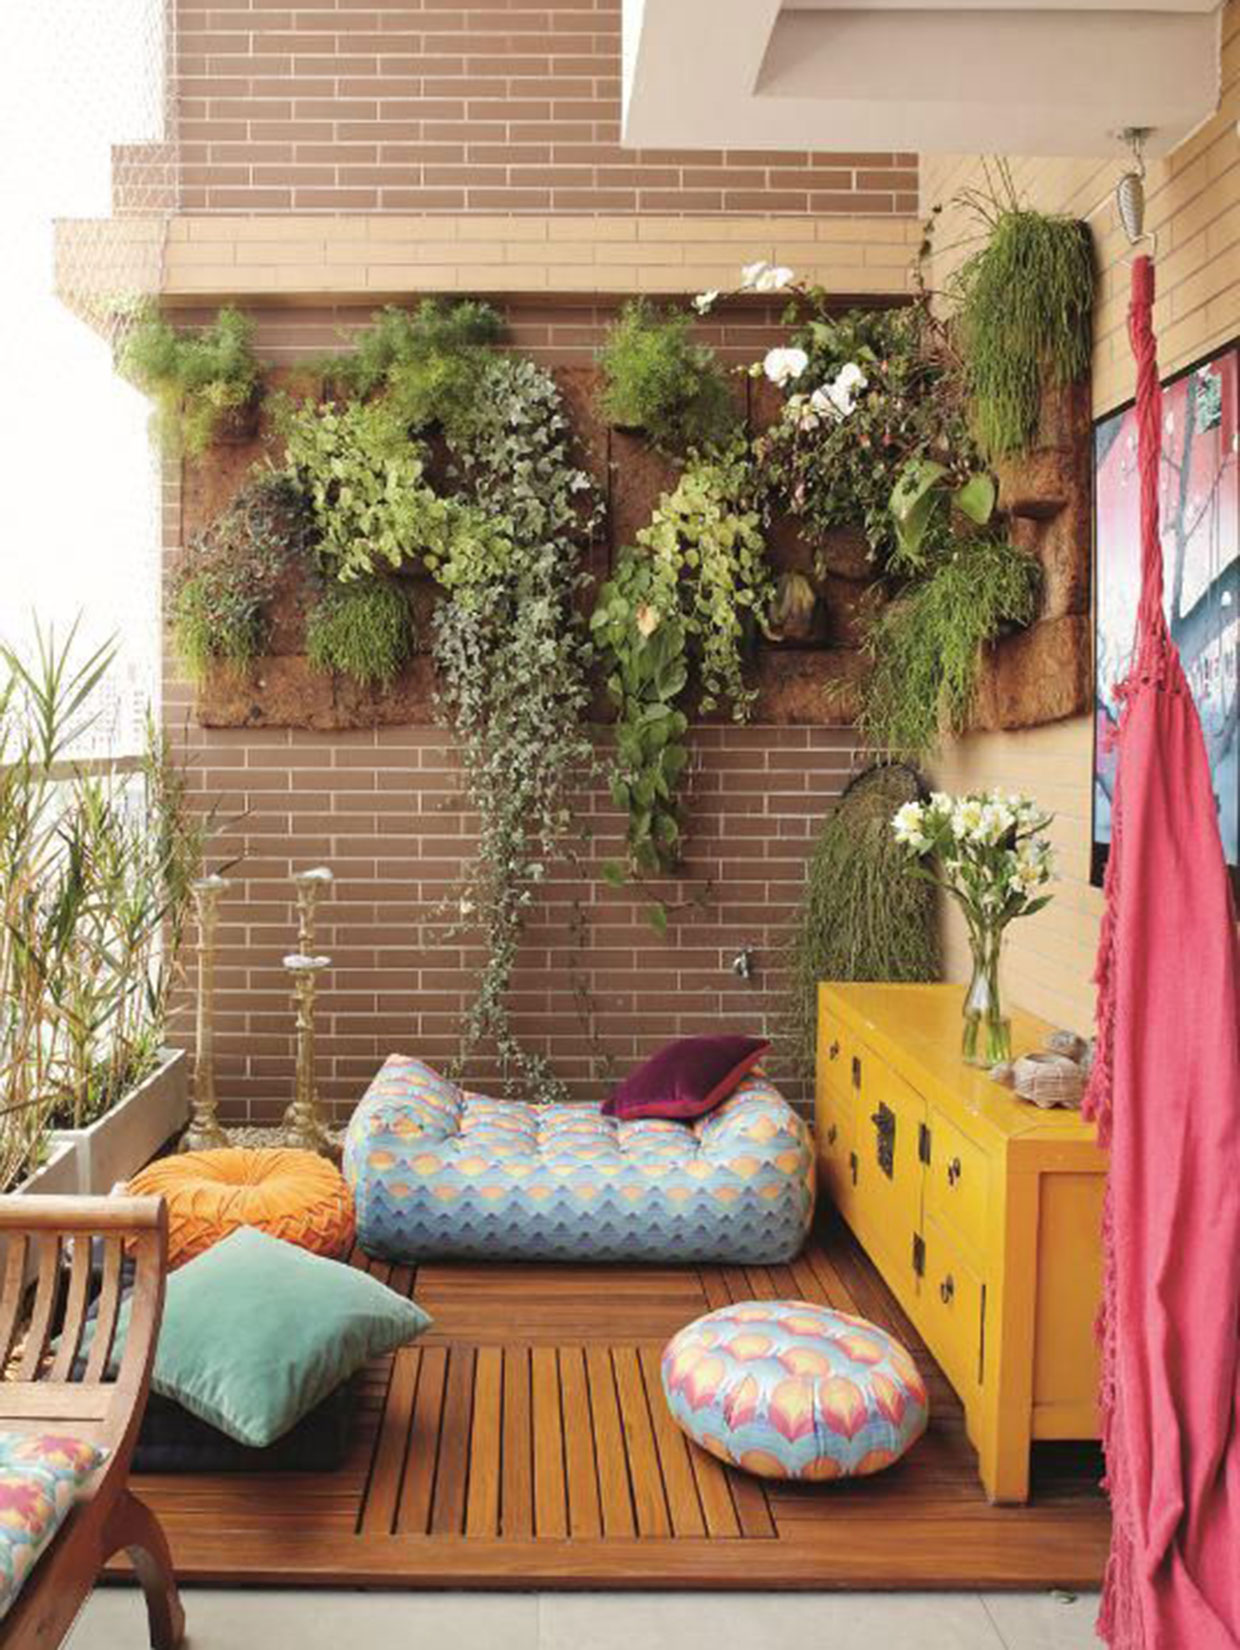 10 ideas for decorating small balcony - house design.